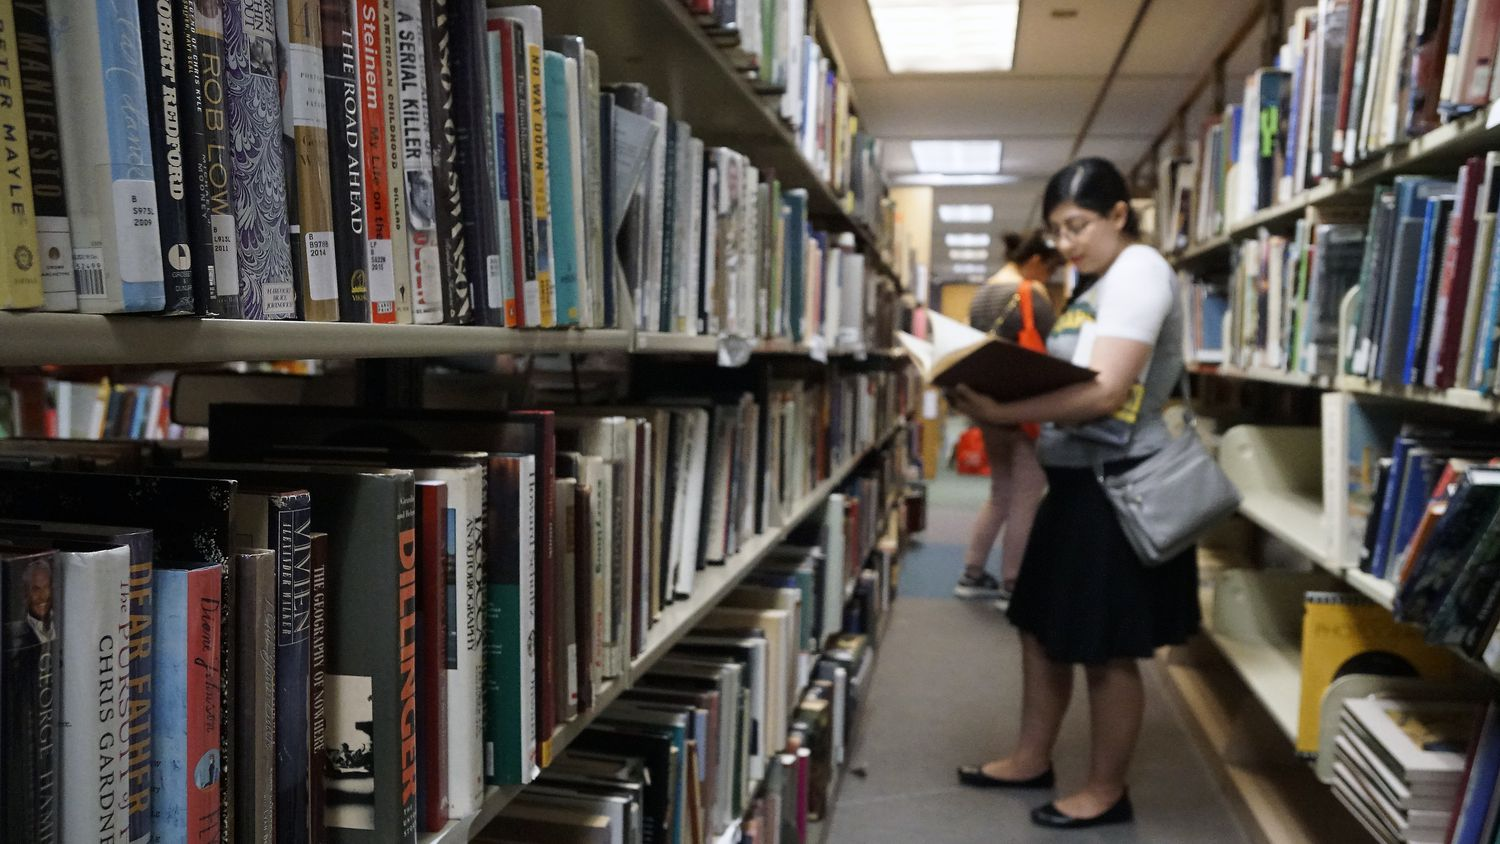 Priscilla Escobedo peruses the bookshelves during the Summer in the City discussion as part of the Dallas Festival of Books at the Dallas Public Library on Saturday, June 1, 2019.